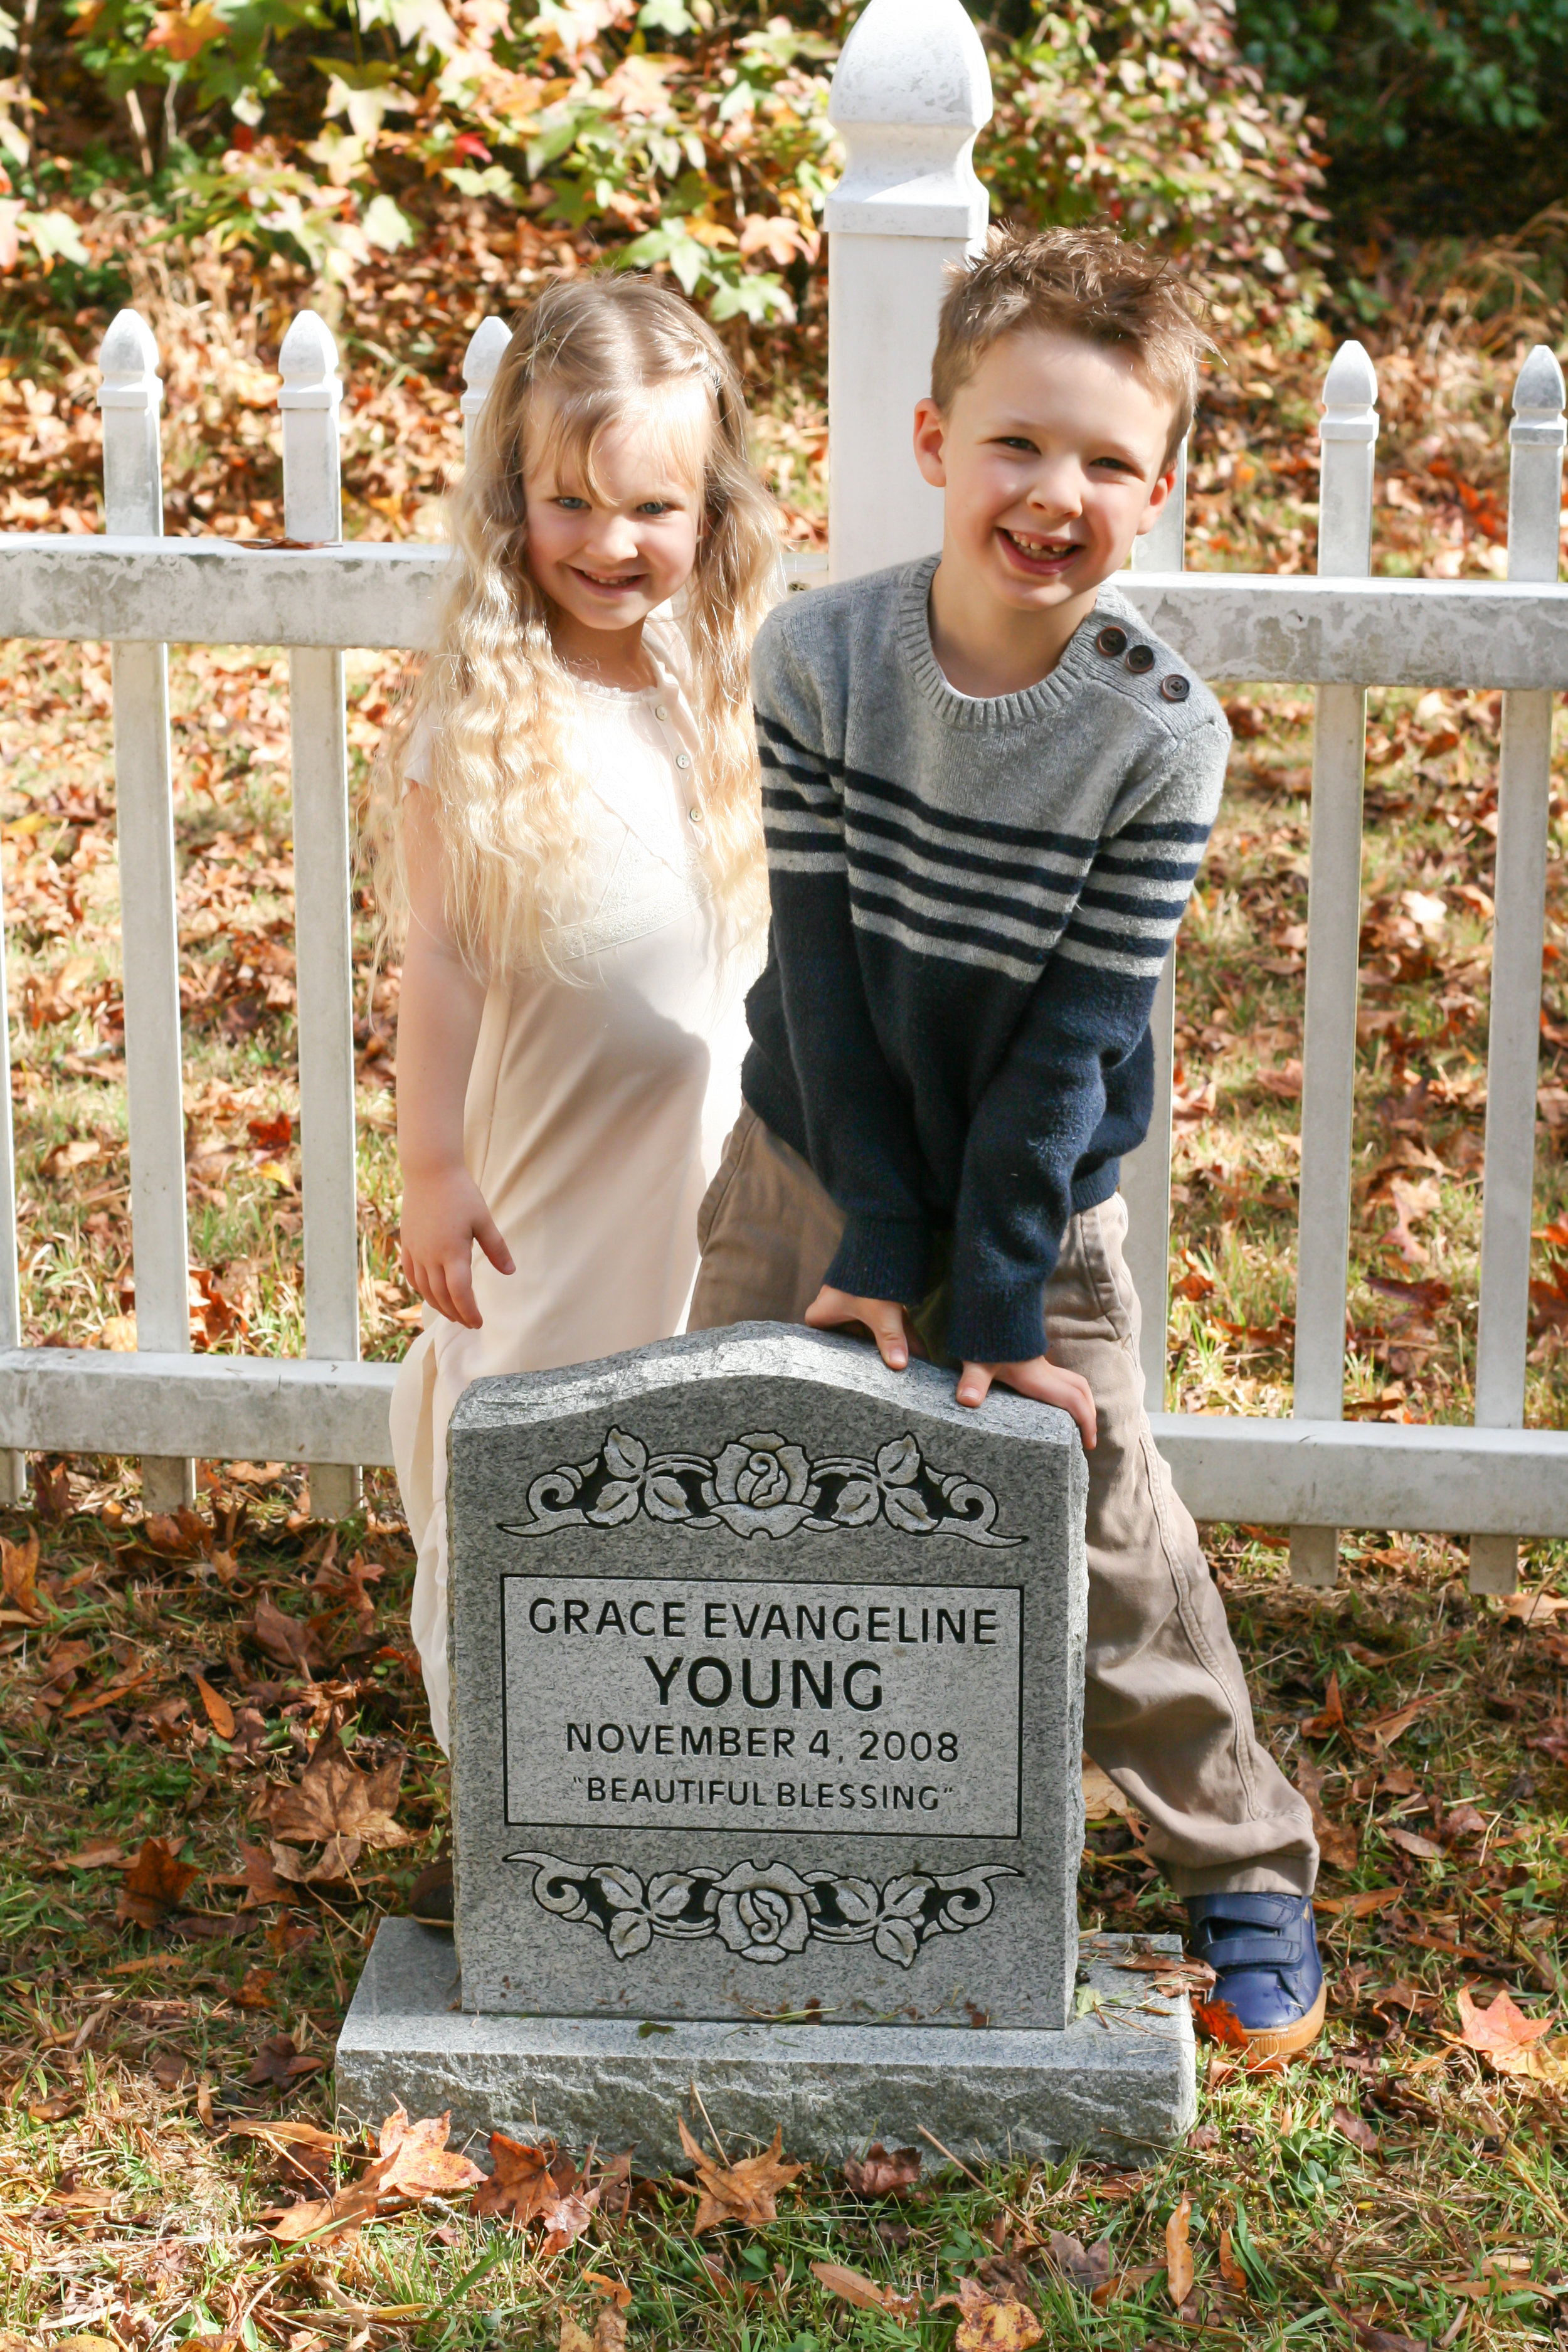 They've grown up with an understanding of life and how precious and fleeting it is. Little 7-pound Grace gave them this gift